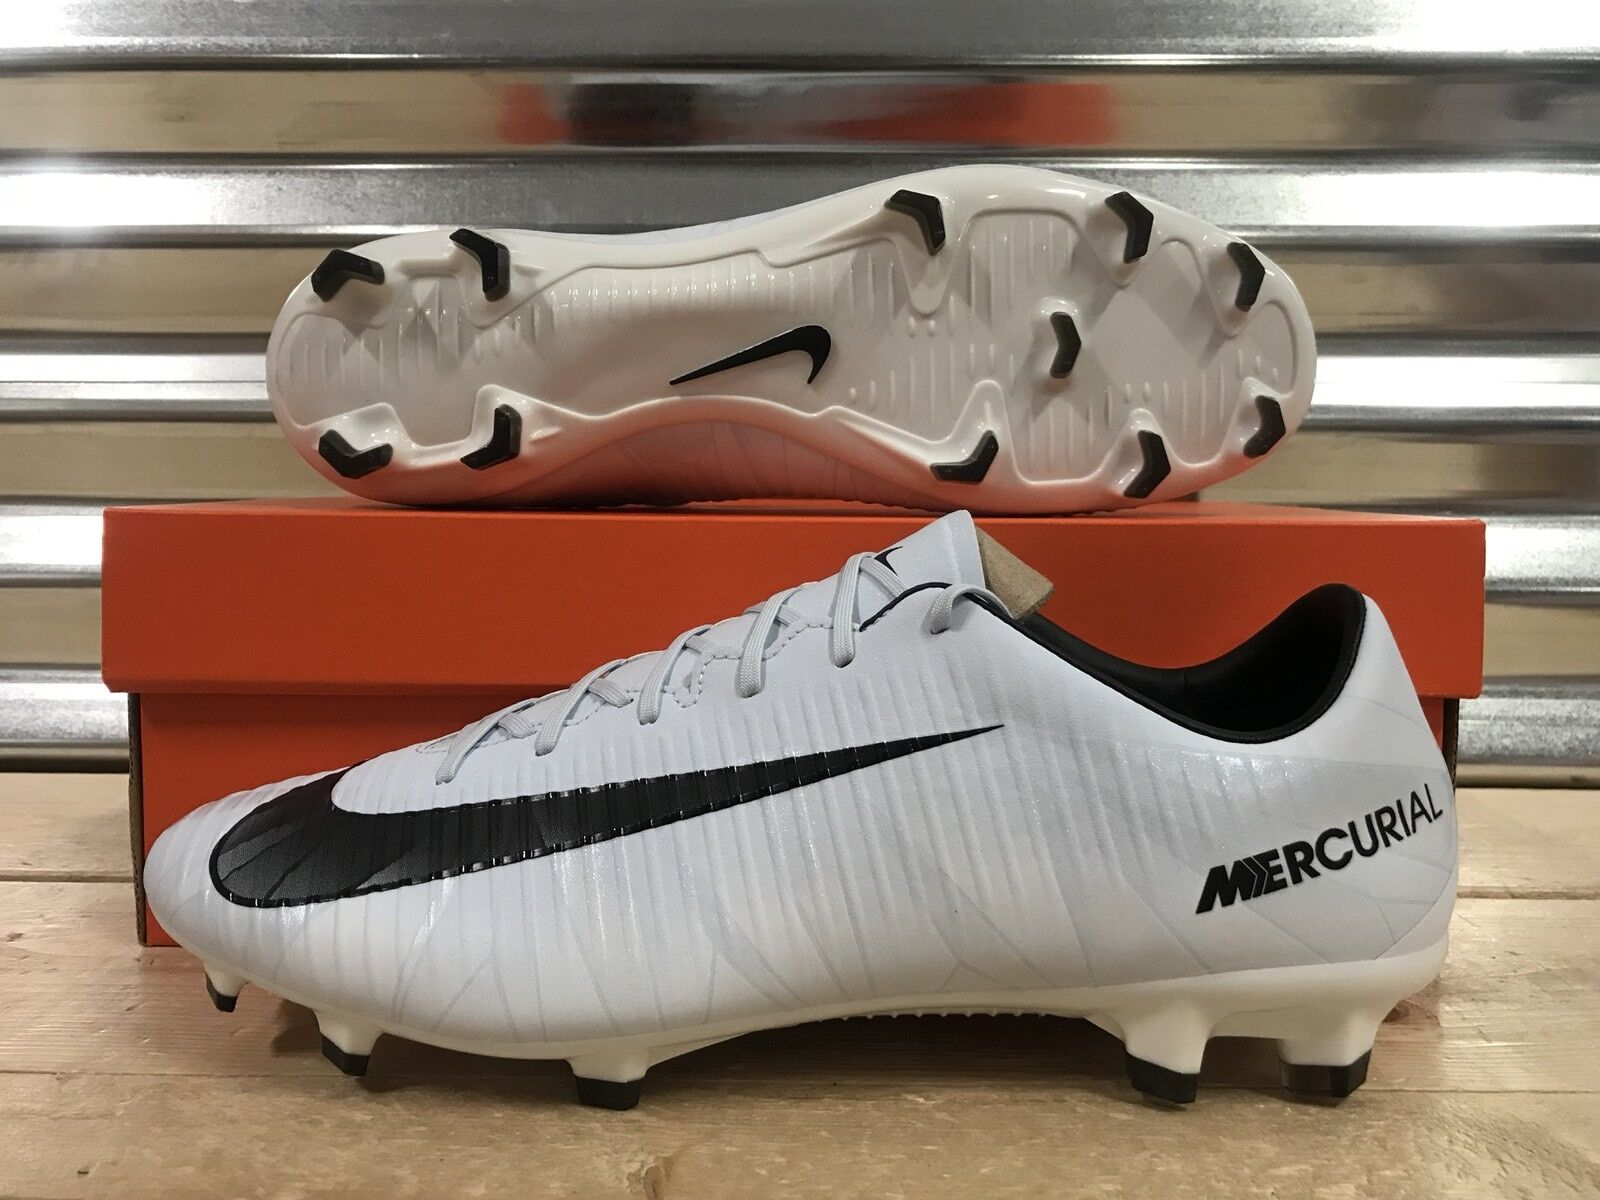 Nike Mercurial Veloce III CR7 FG Soccer Cleats White Blue Tint Price reduction Seasonal clearance sale